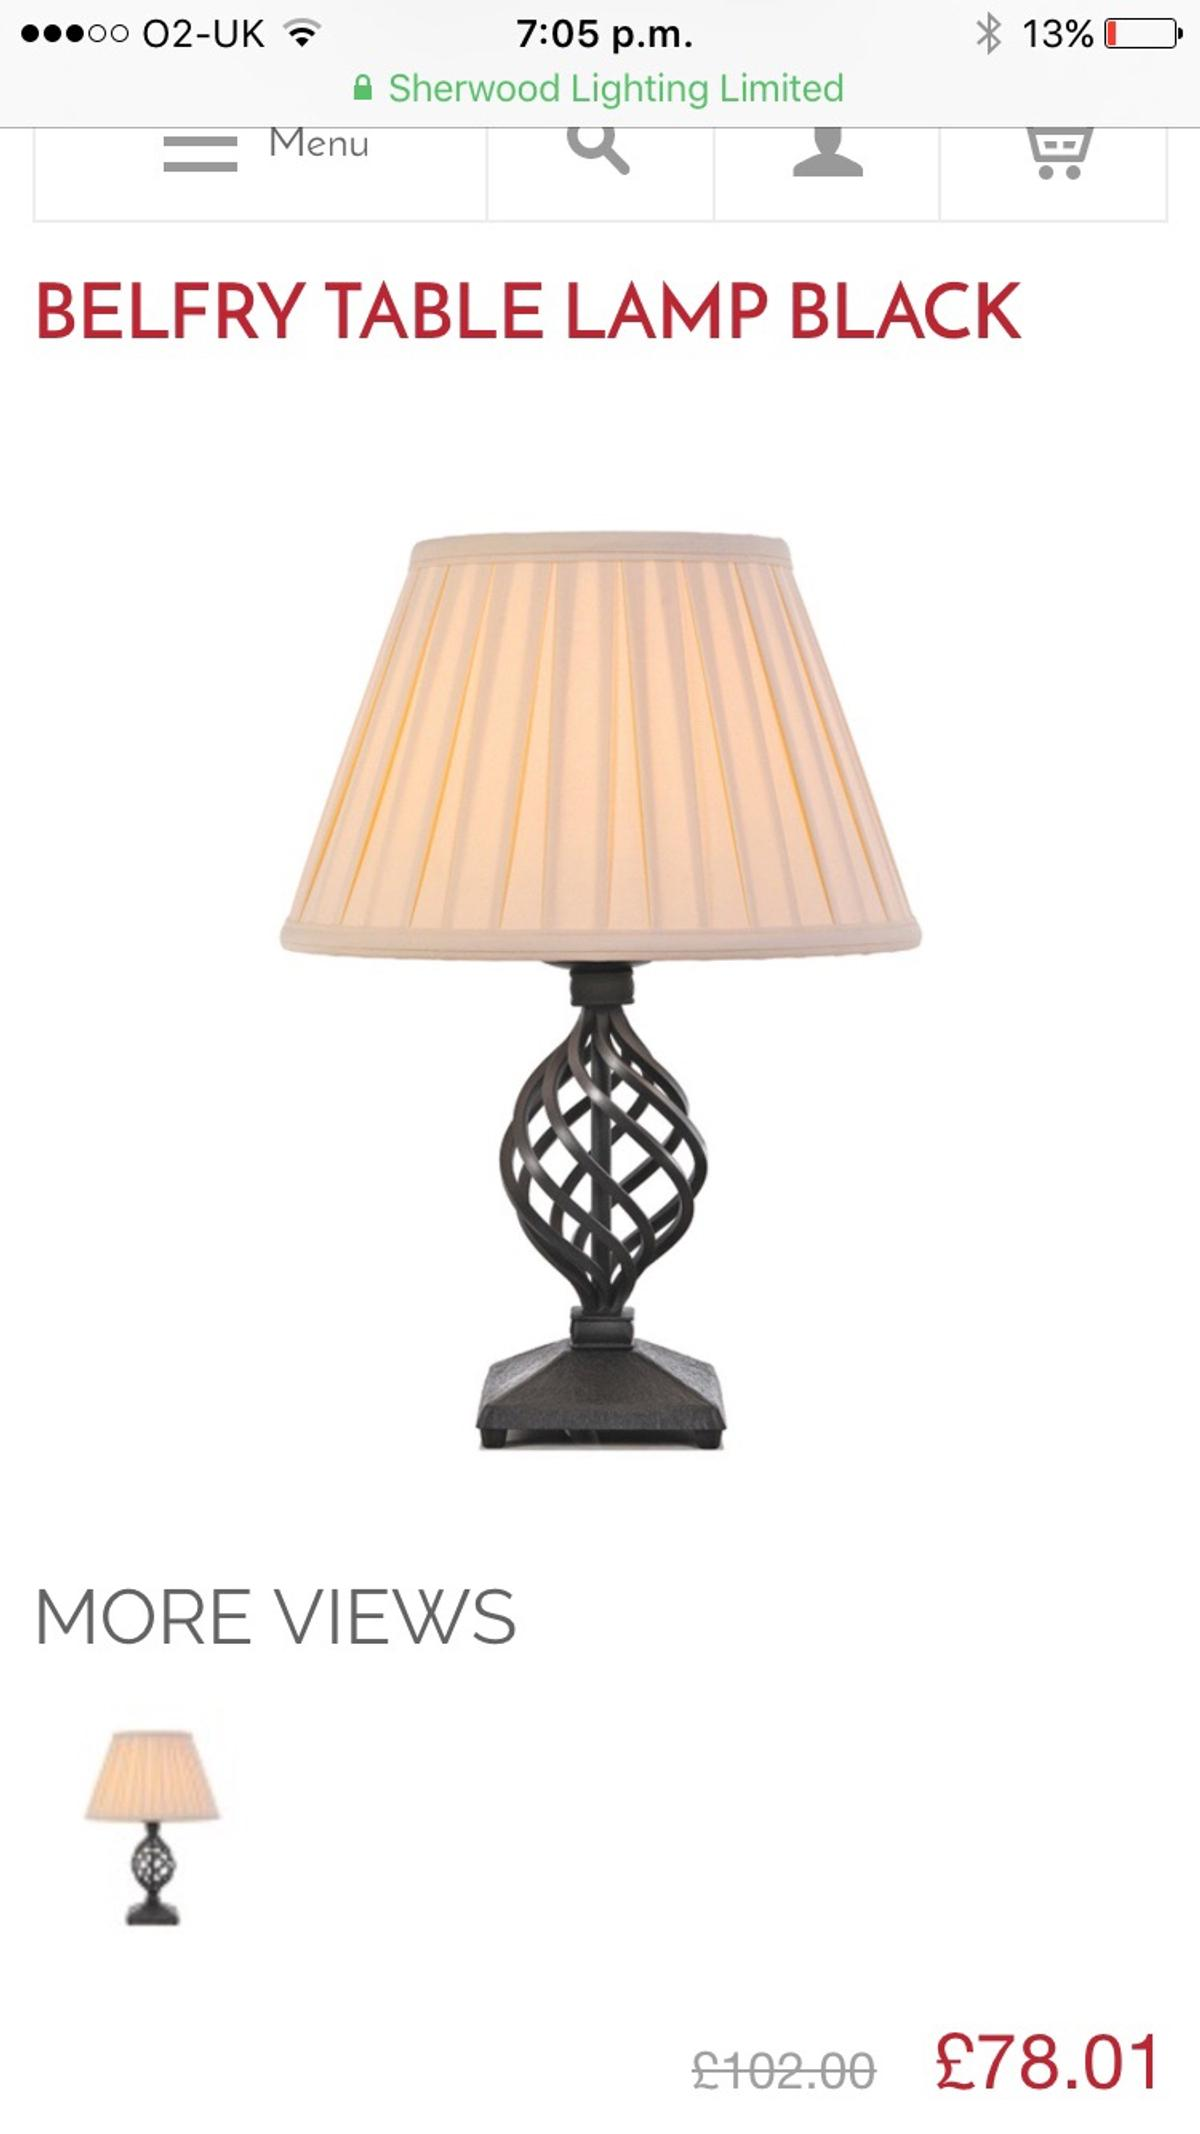 Solid Wrought Iron Lamp Base In M27 Swinton For 15 00 For Sale Shpock